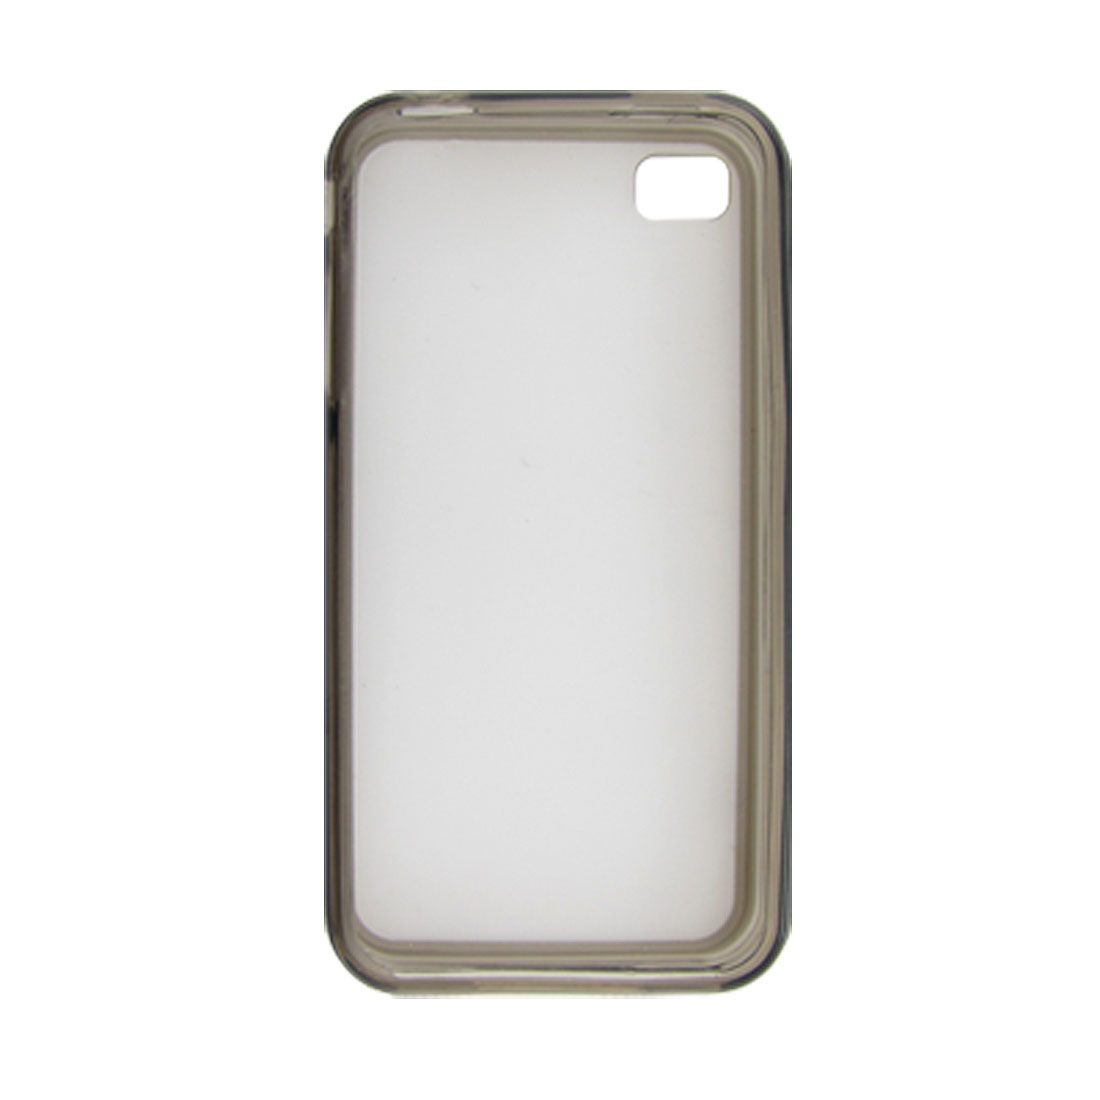 Gray Sides Anti-Glare Back Plastic Cover Case for iPhone 4 4G